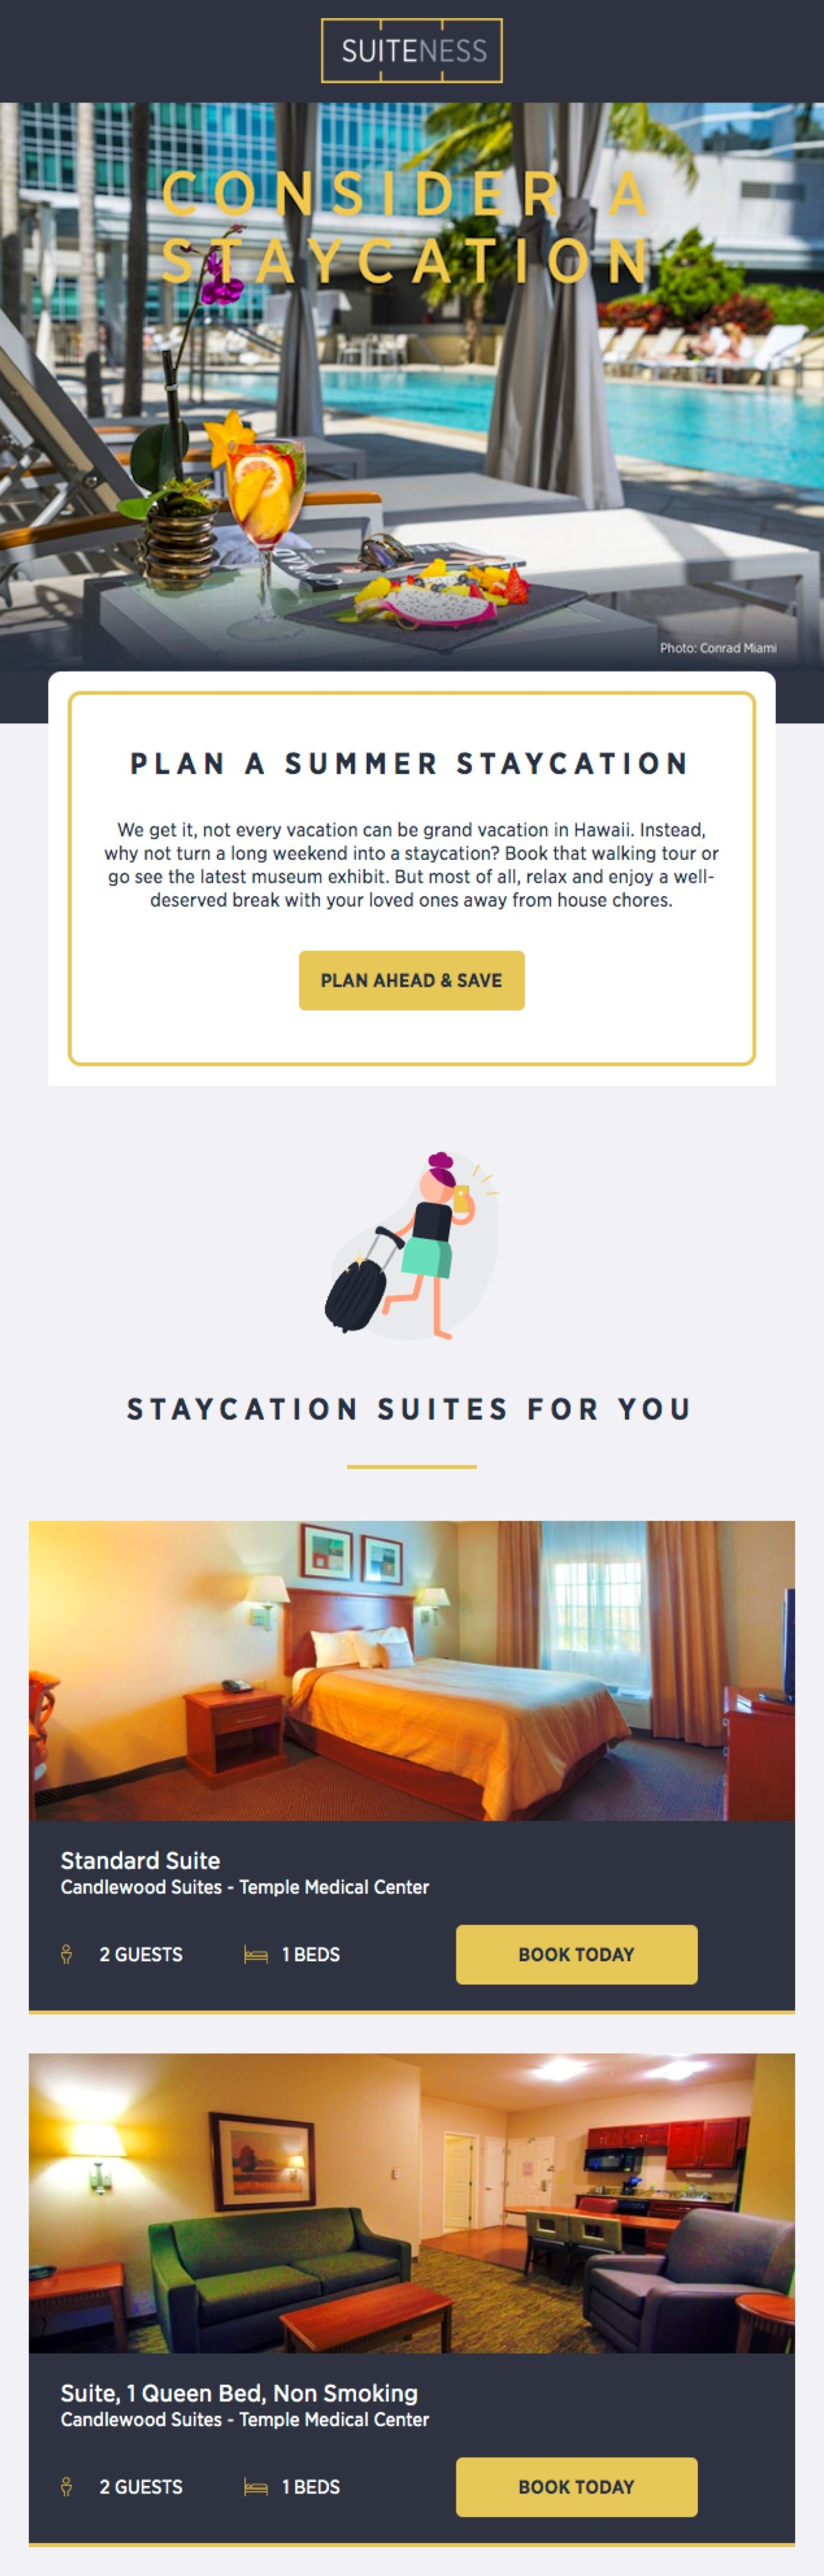 Suiteness hotel newsletter example